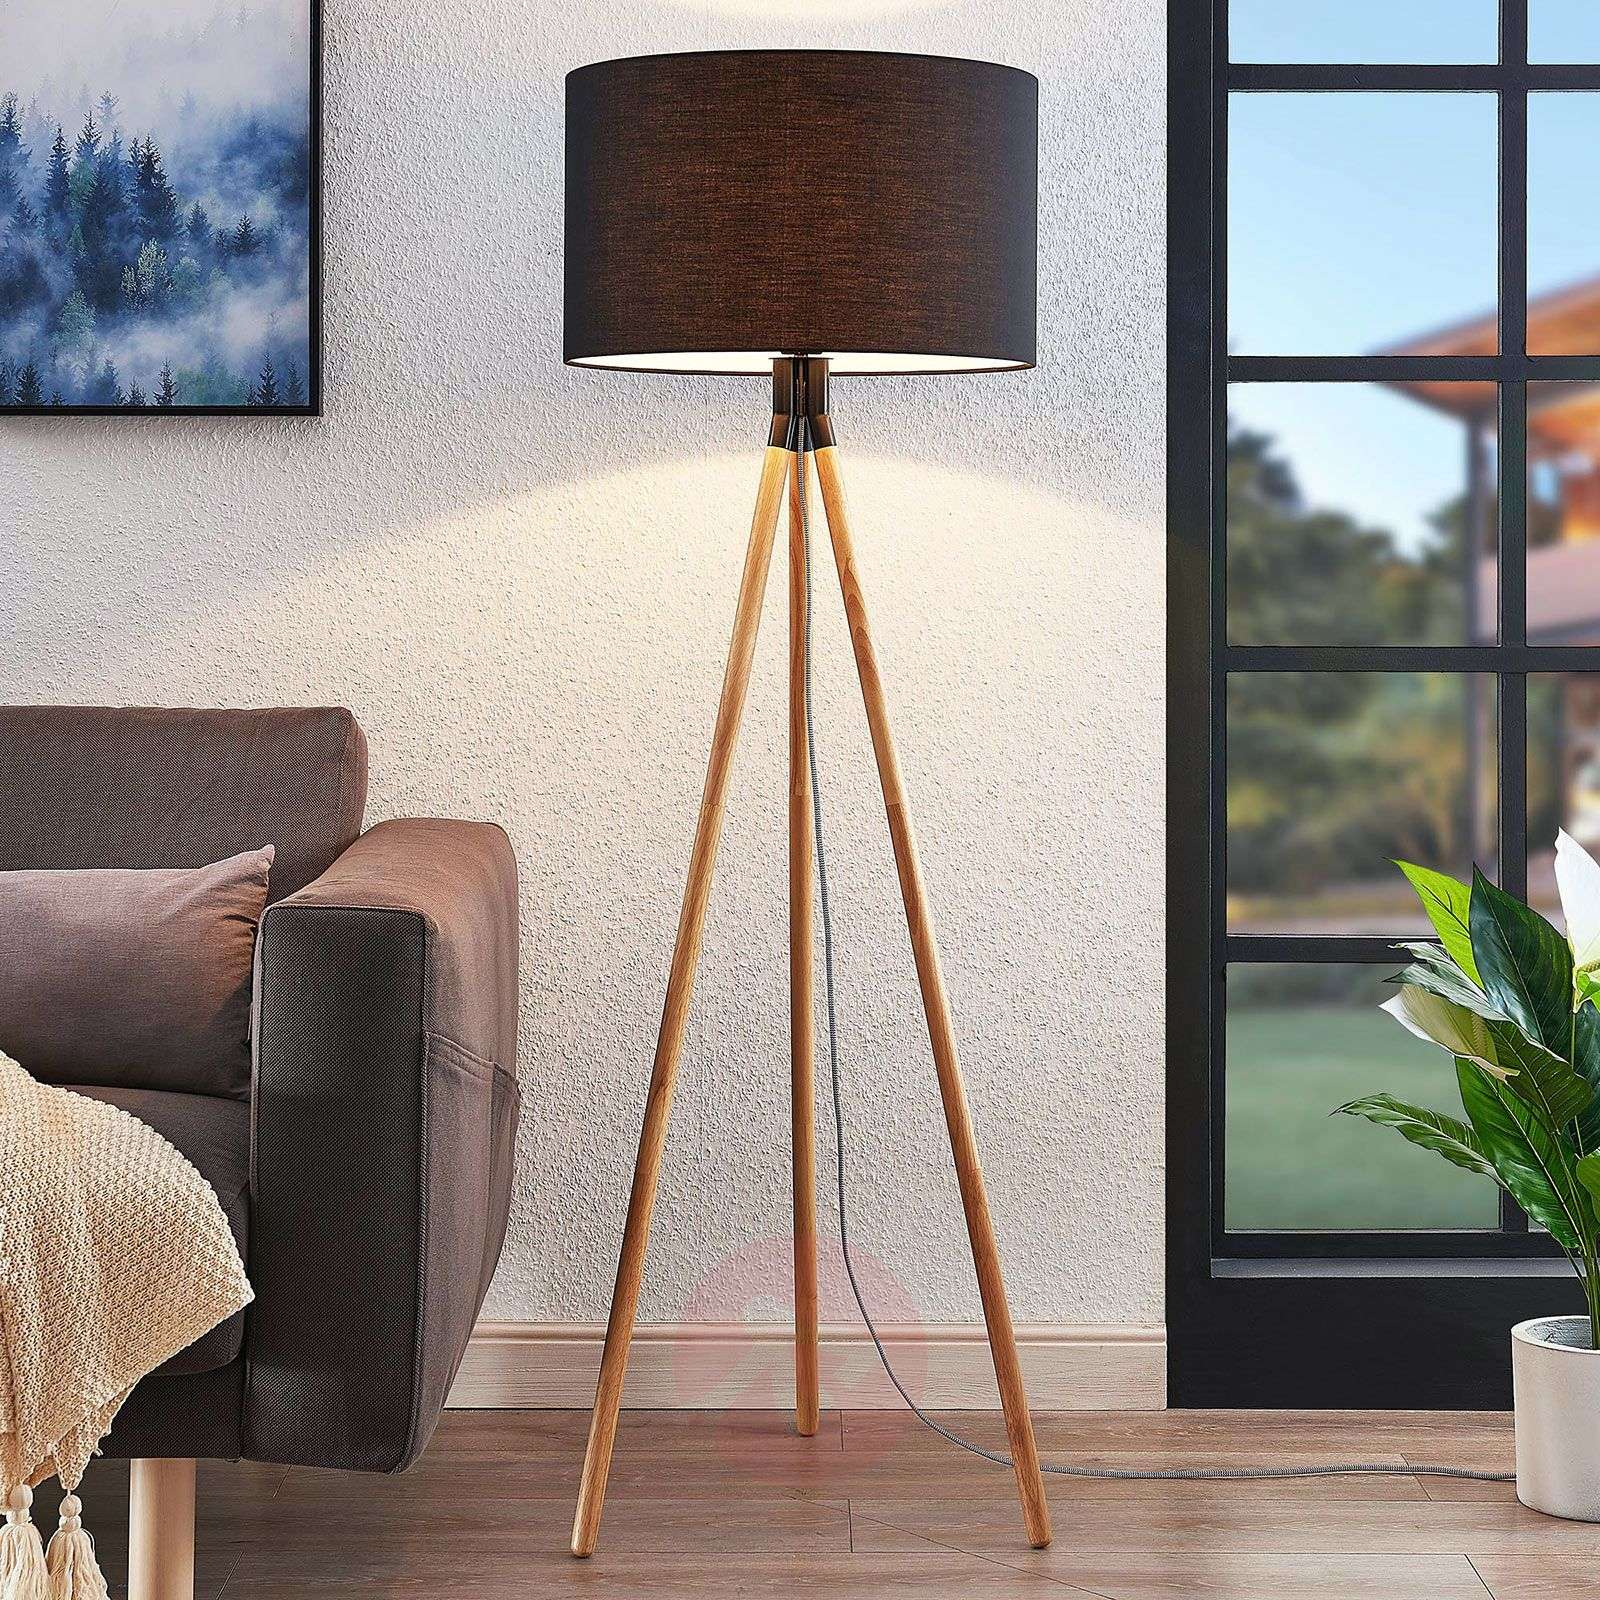 Claira tripod fabric floor lamp, round, black-9624420-01